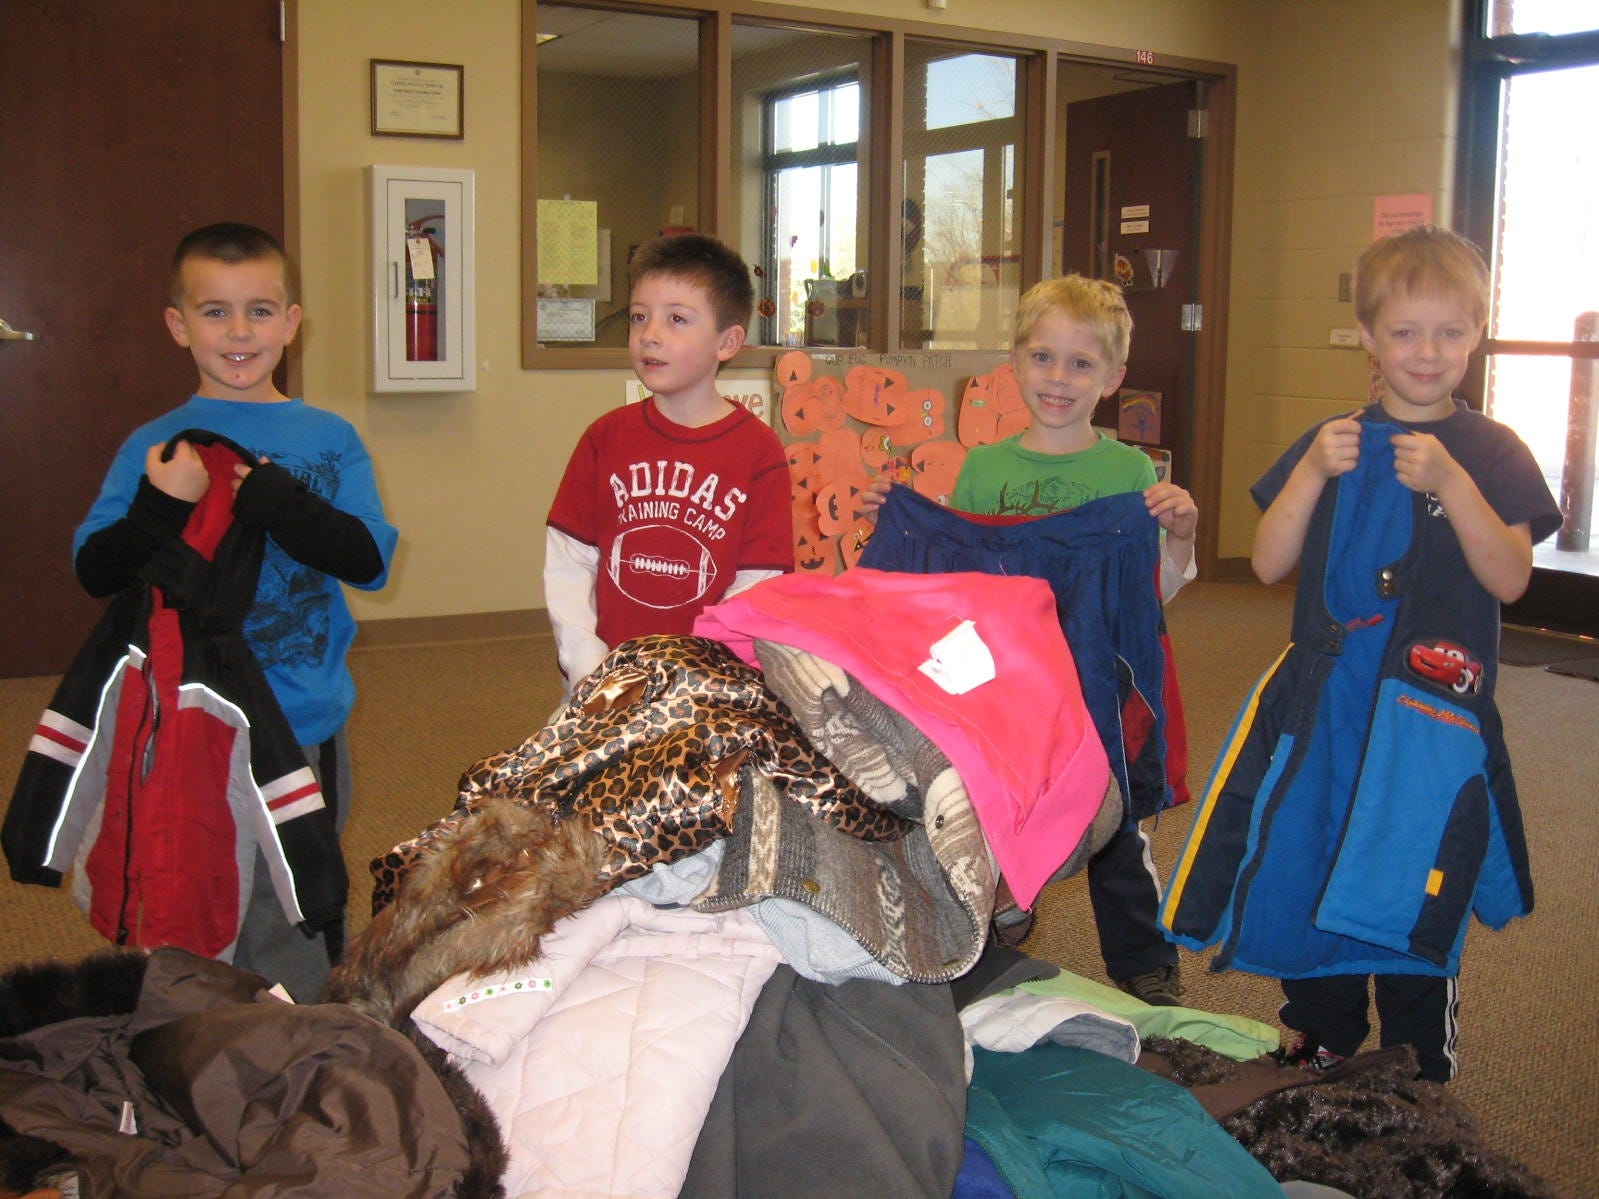 Kindergarten students from Faith Early Learning Center in Farragut collected coats for Knox Area Resuce Ministries' Coats for the Cold. The school collected 95 coats for the program. Students helping count coats and jackets are, from left, Wyatt Ford, William Wilson, Leo Karnitz and Brandon Wright.